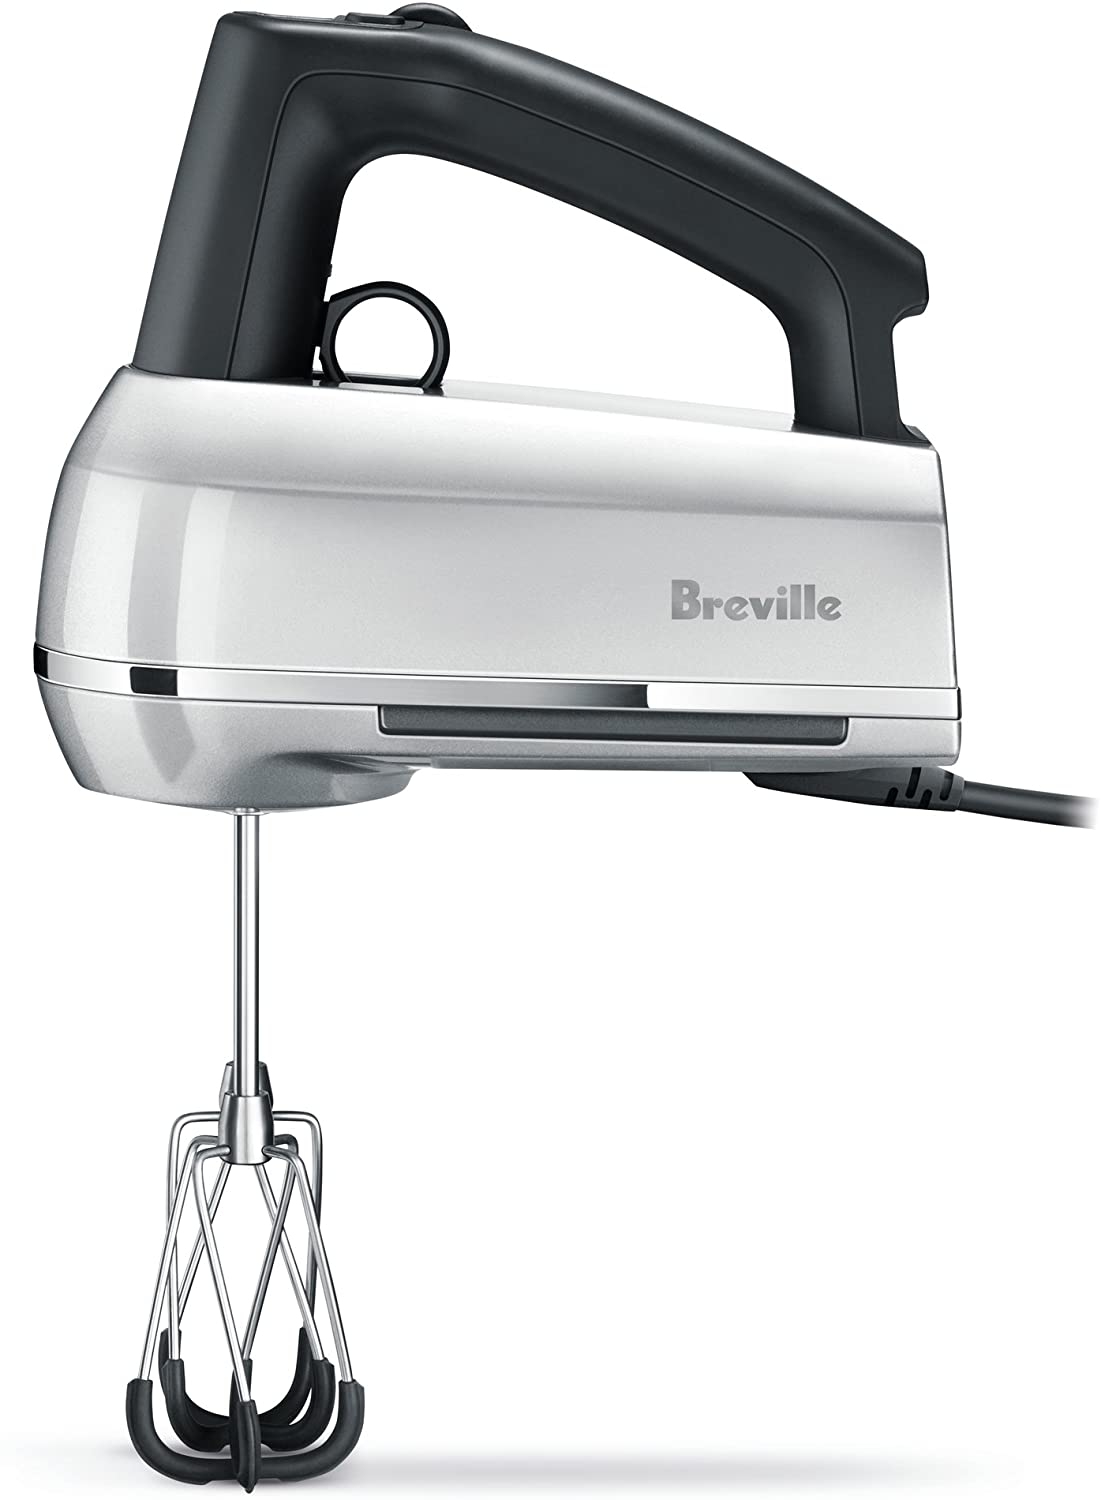 Breville BHM800SIL Handy Mix Scraper Hand Mixer, 9-Speed